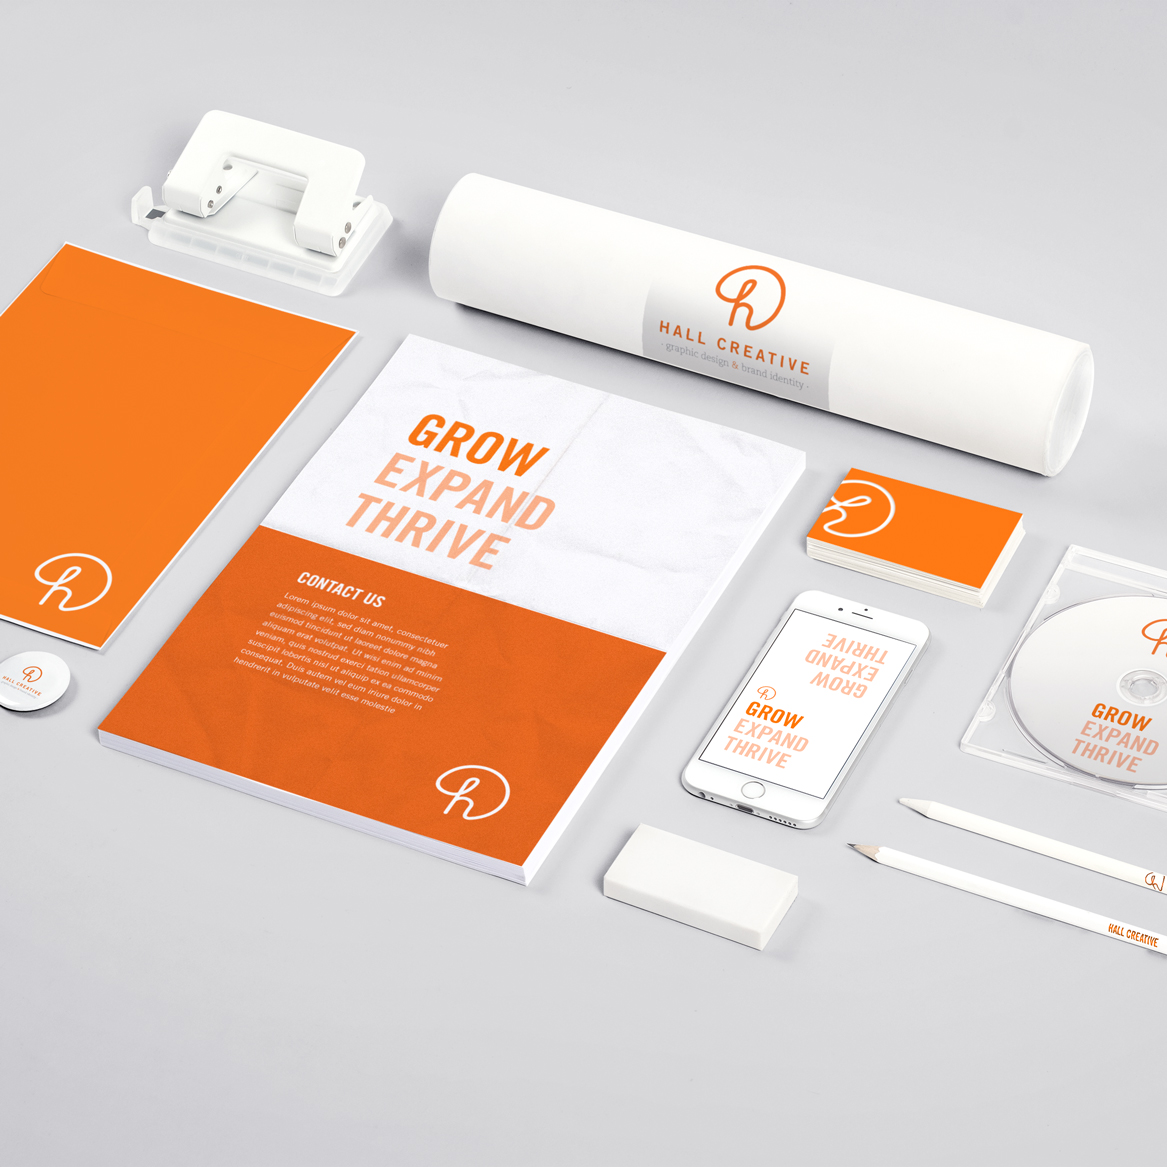 Hall-Creative-walsall-brand-identity-and-logo-design-services.jpg